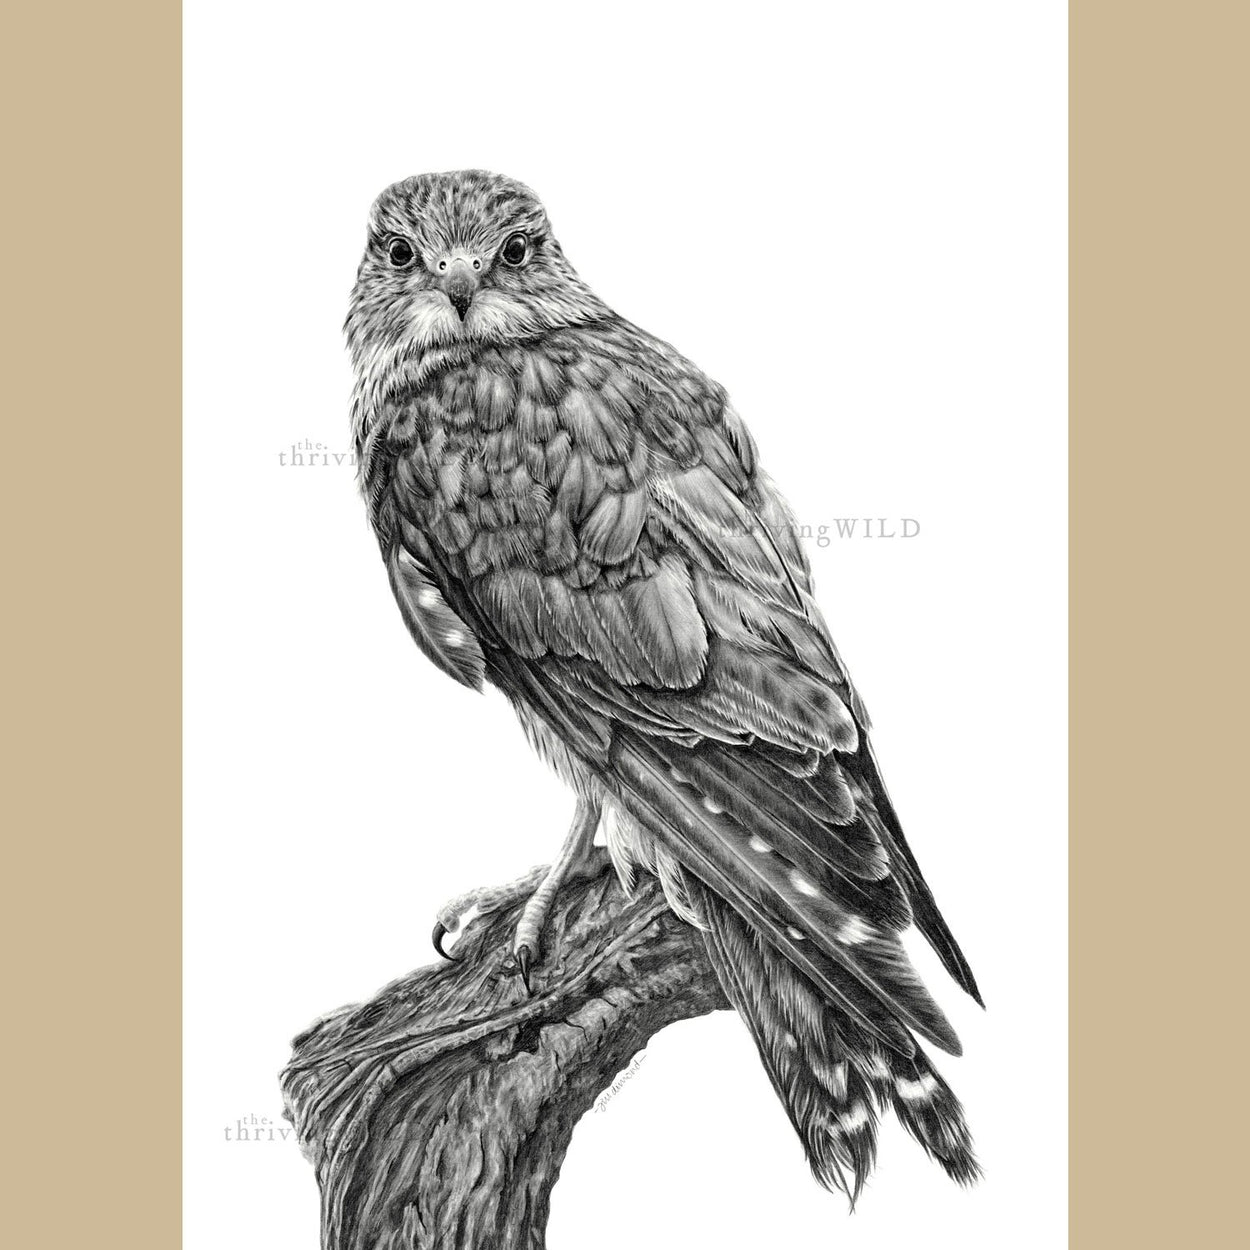 Merlin Bird of Prey Drawing - The Thriving Wild